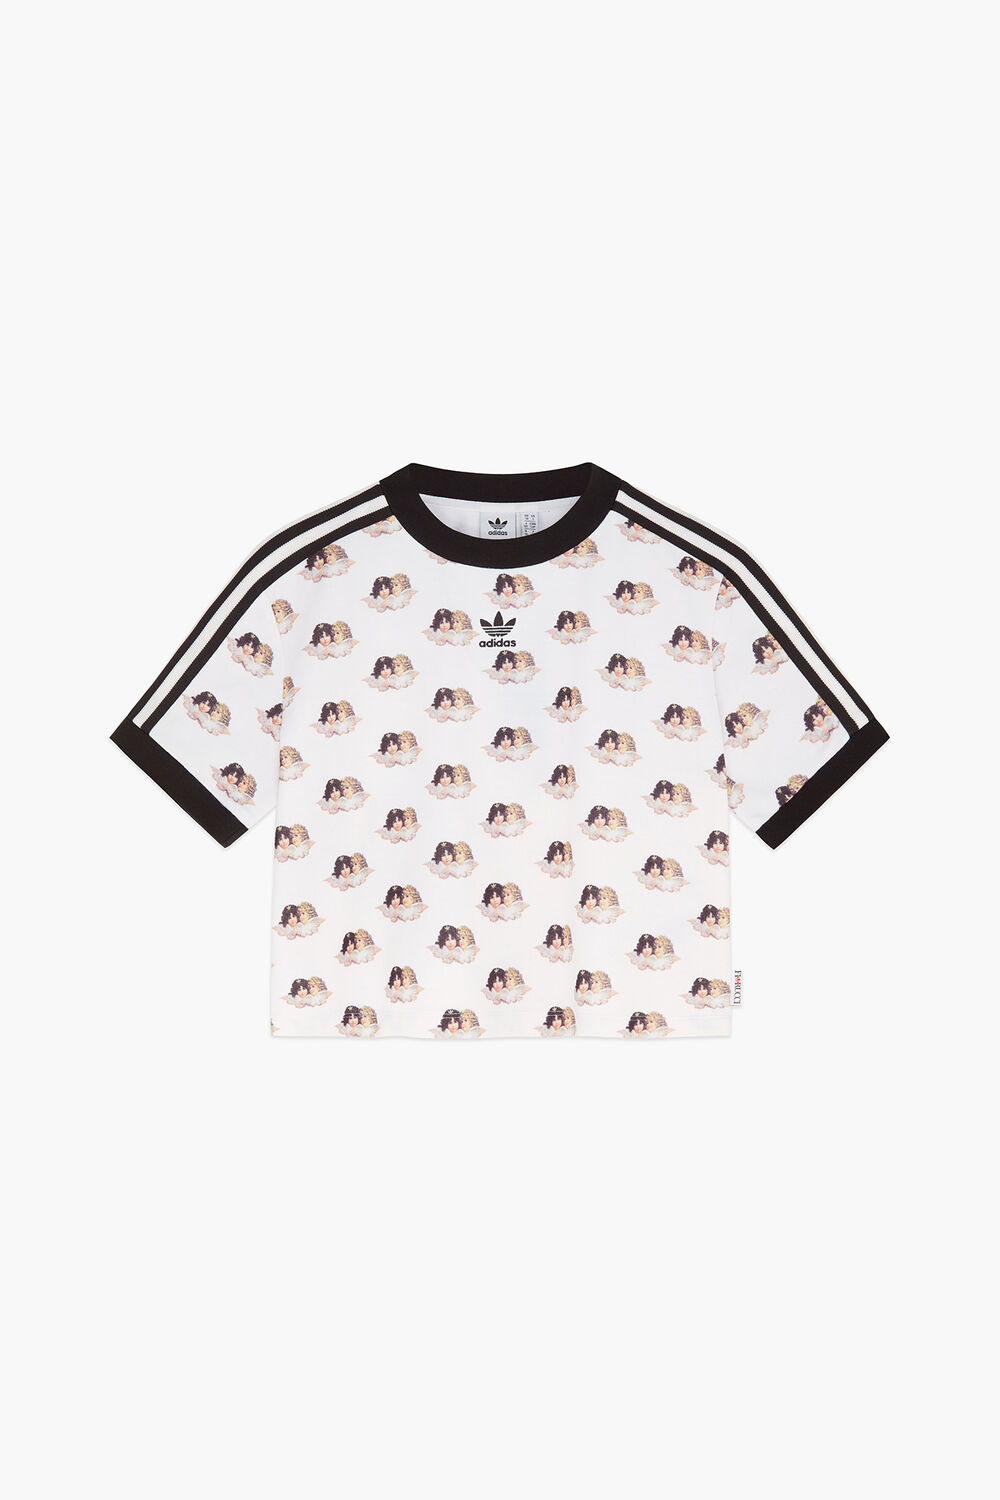 Adidas x Fiorucci All Over Angels Cropped T-Shirt White